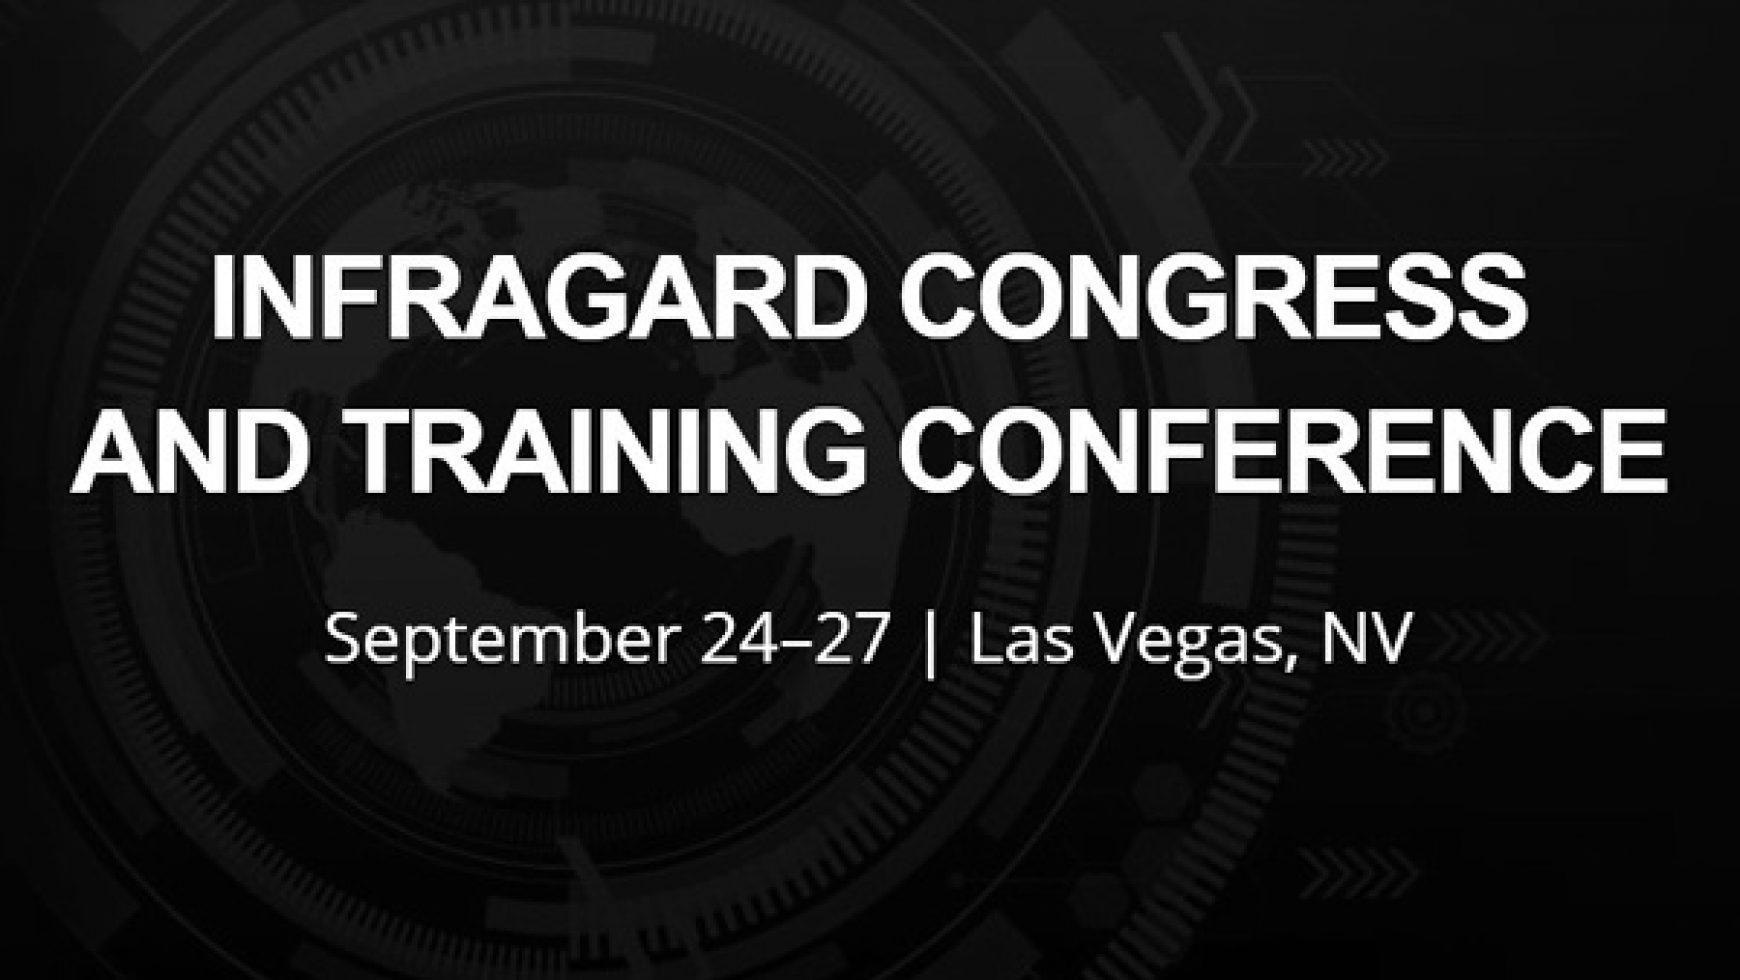 2018 InfraGard Congress and Training Conference